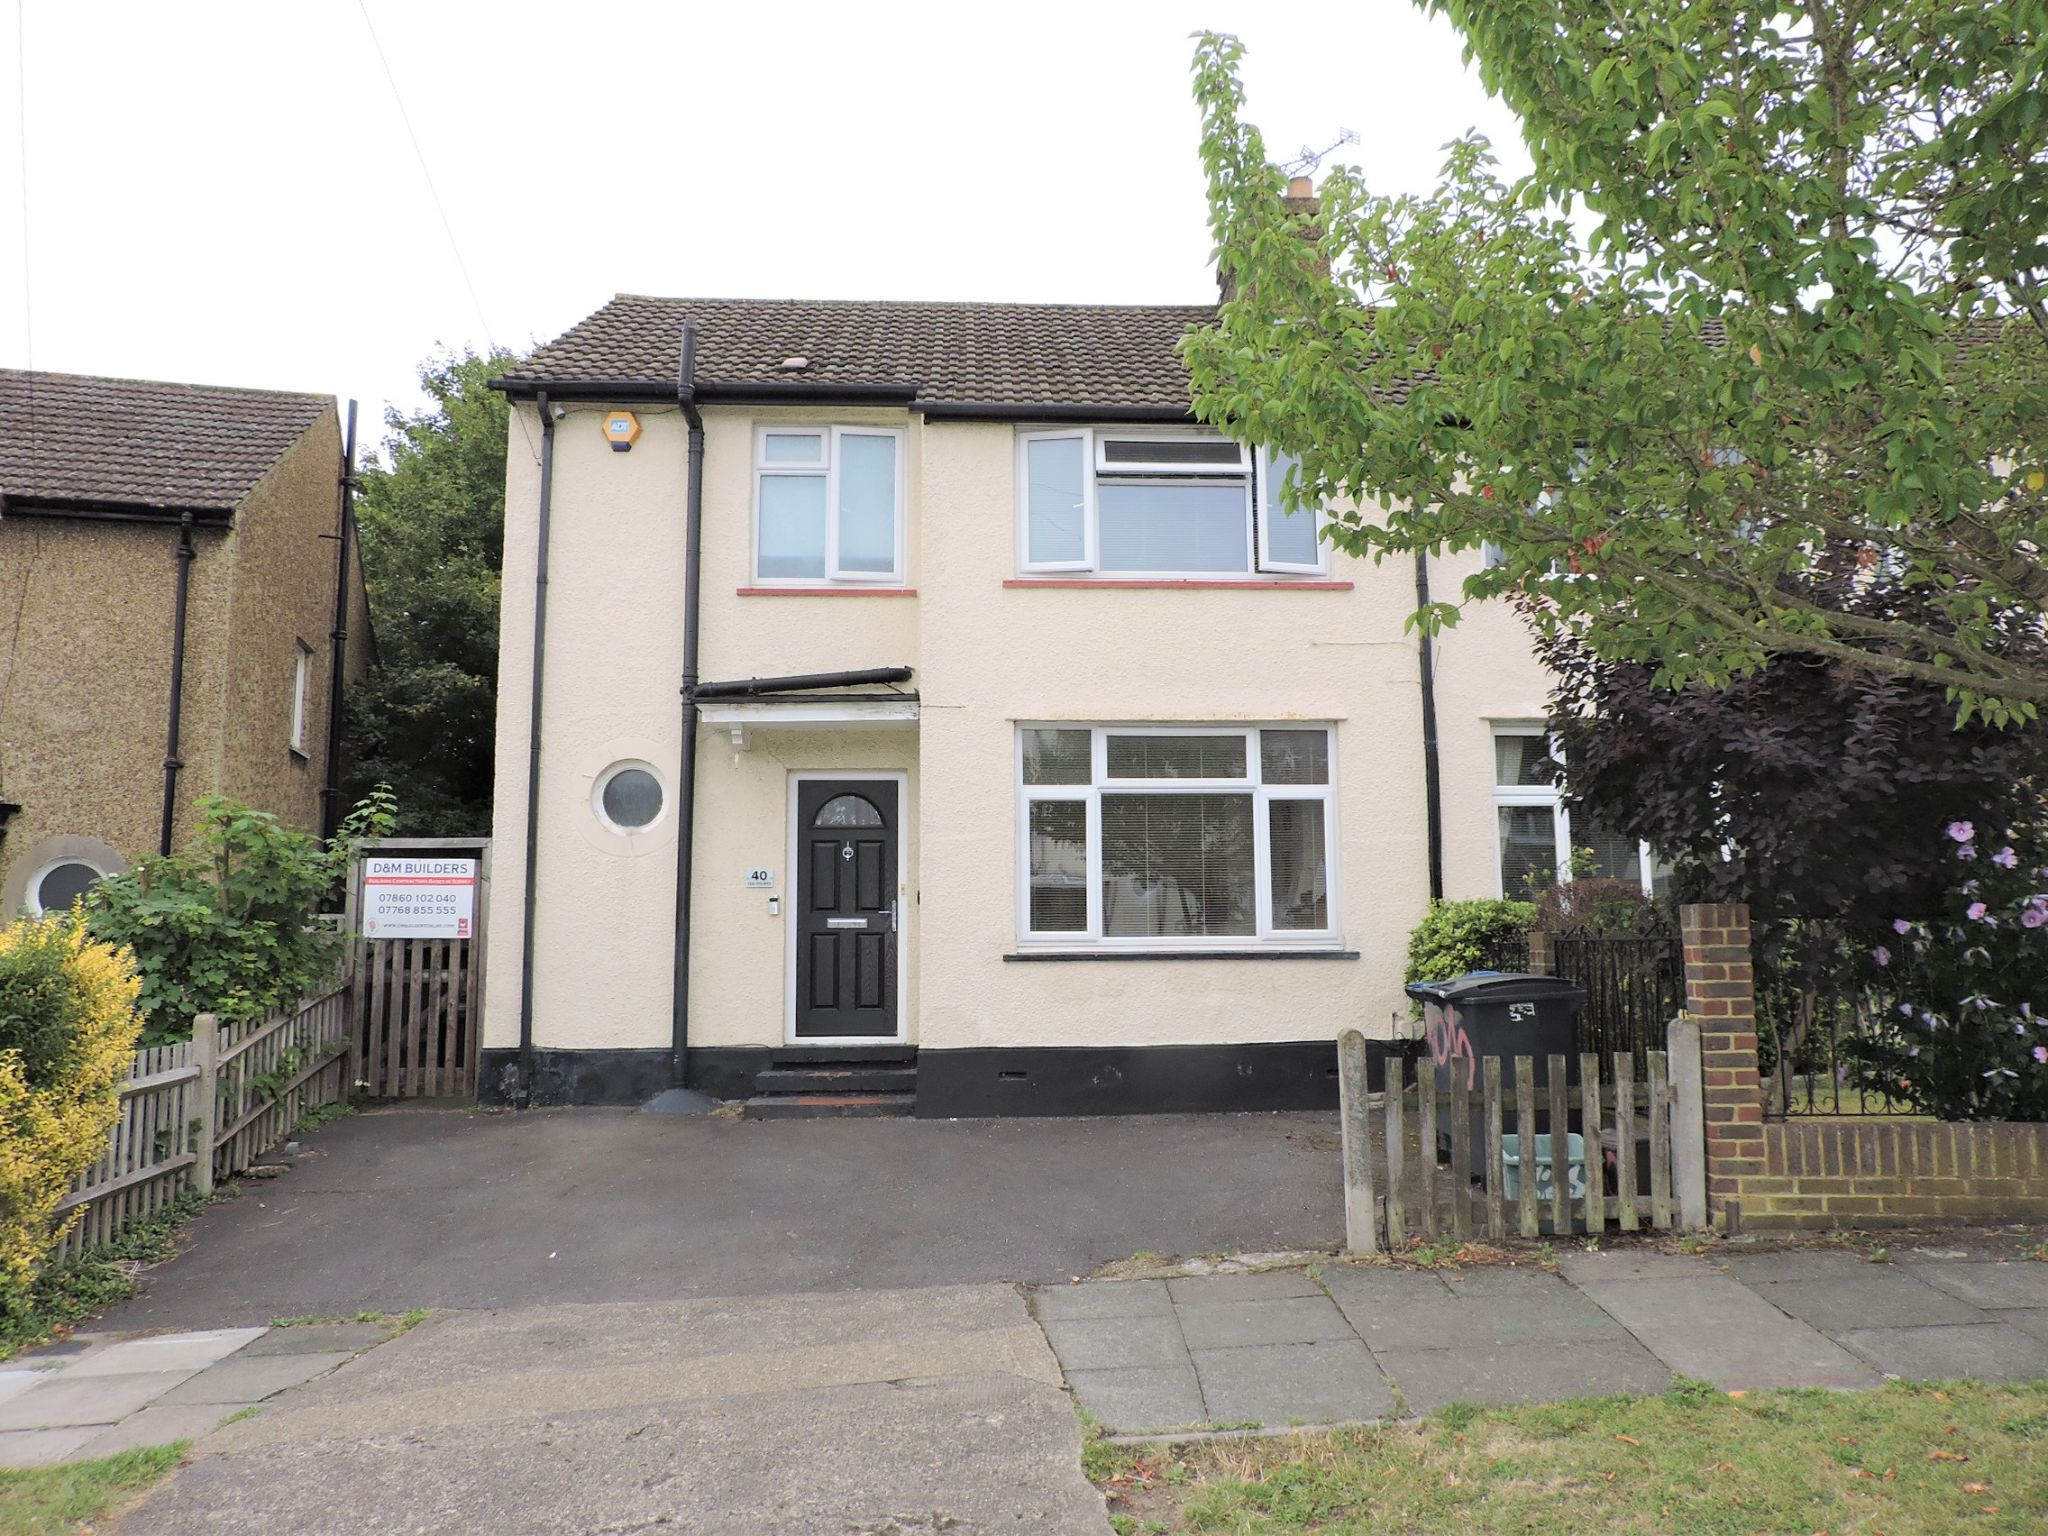 3 bedroom semi-detached house For Sale in Surbiton - Photograph 1